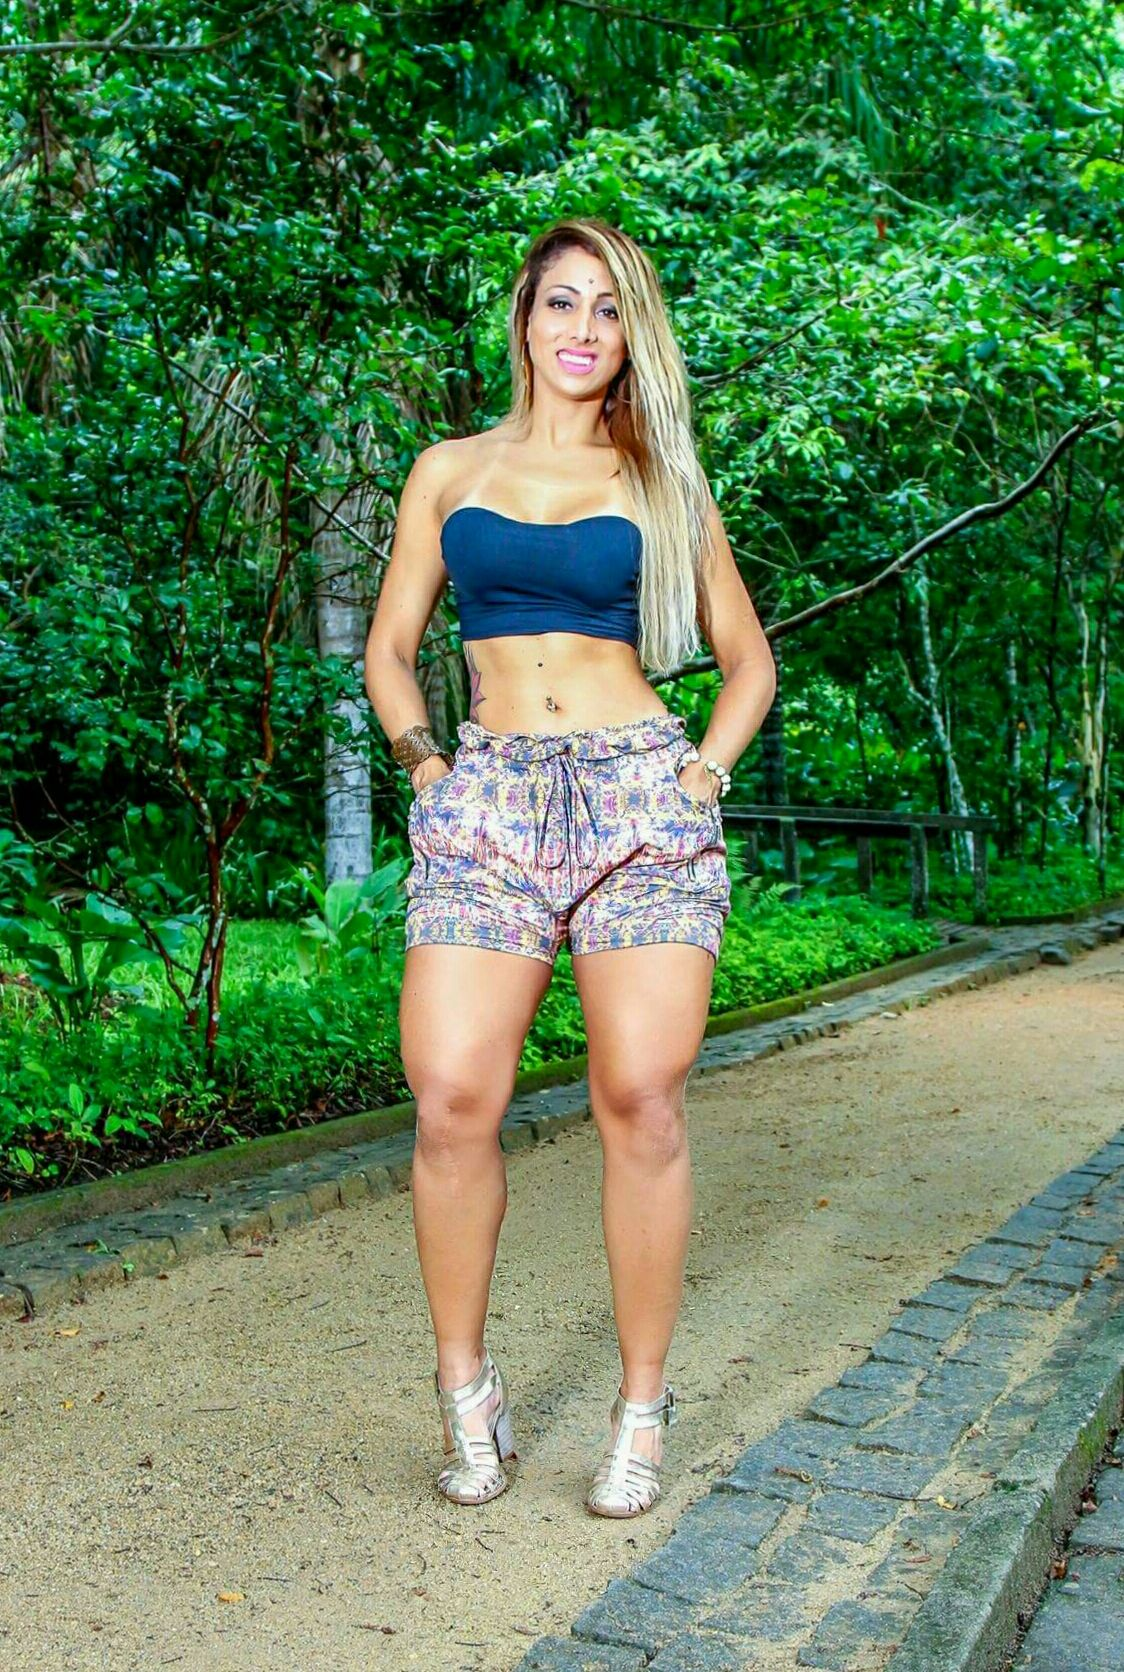 abrantes milf women Milf dating website for married milf personals style online dating abrantes,portugal virtual sex with women and man gender: woman.